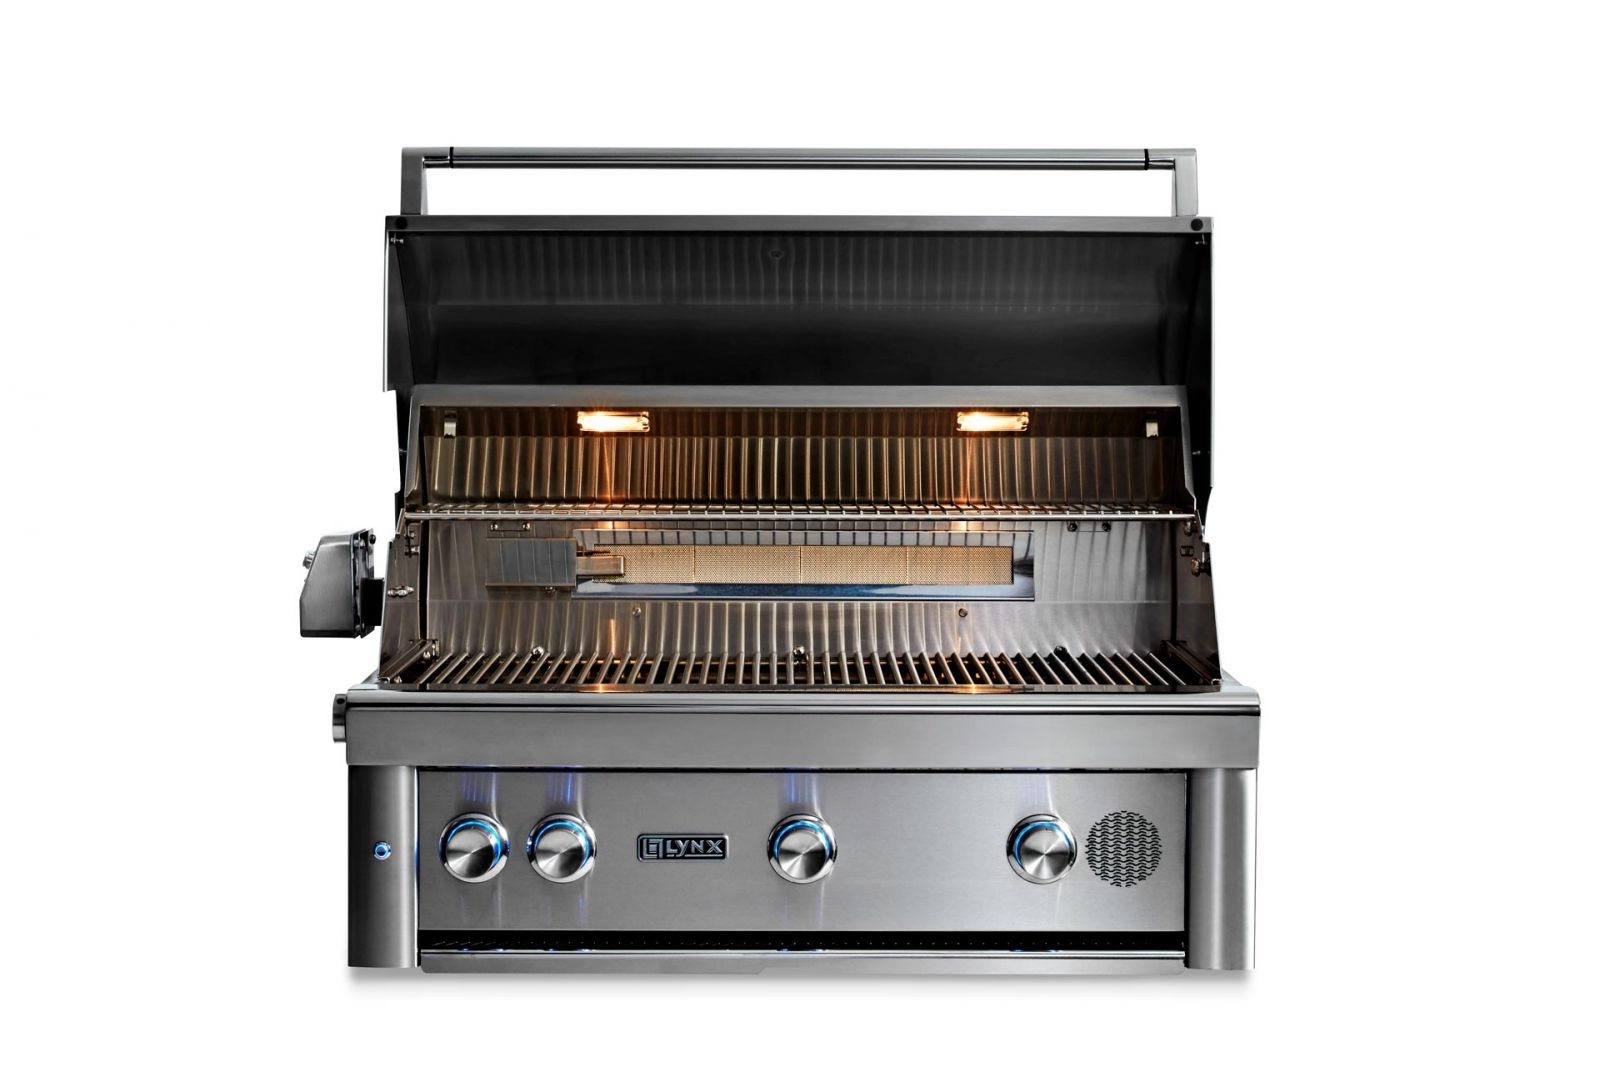 """Lynx 36"""" Professional Built-in Smart Grill With Rotisserie"""